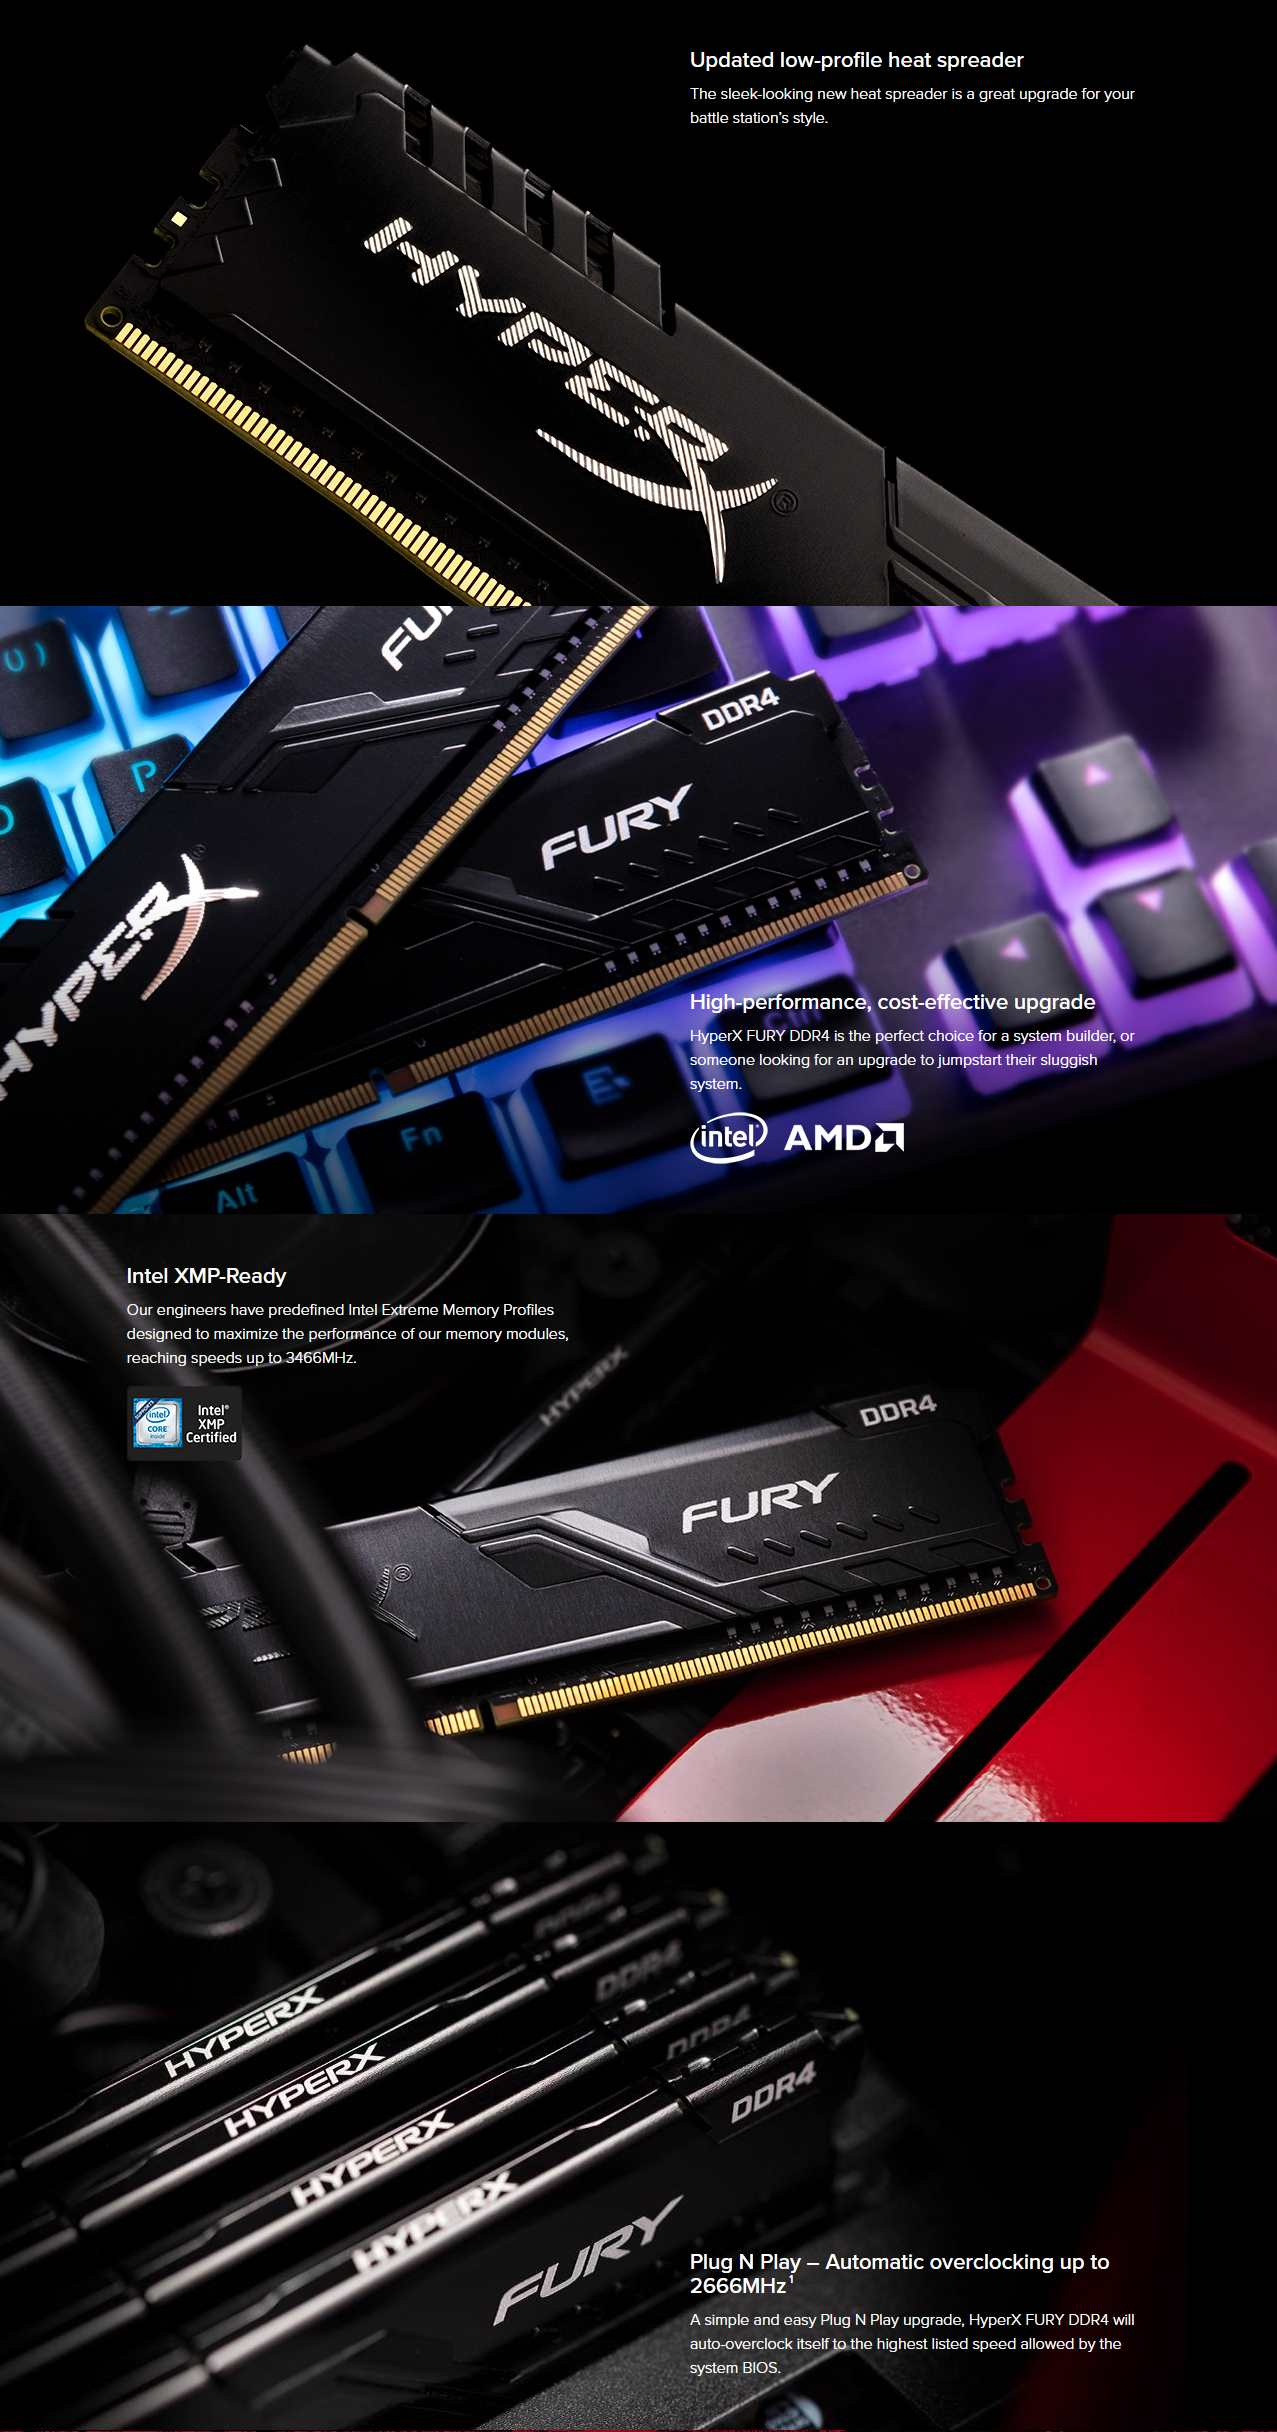 A large marketing image providing additional information about the product Kingston 16GB Kit (2x8GB) DDR4 HyperX Fury Black C17 3600MHz - Additional alt info not provided